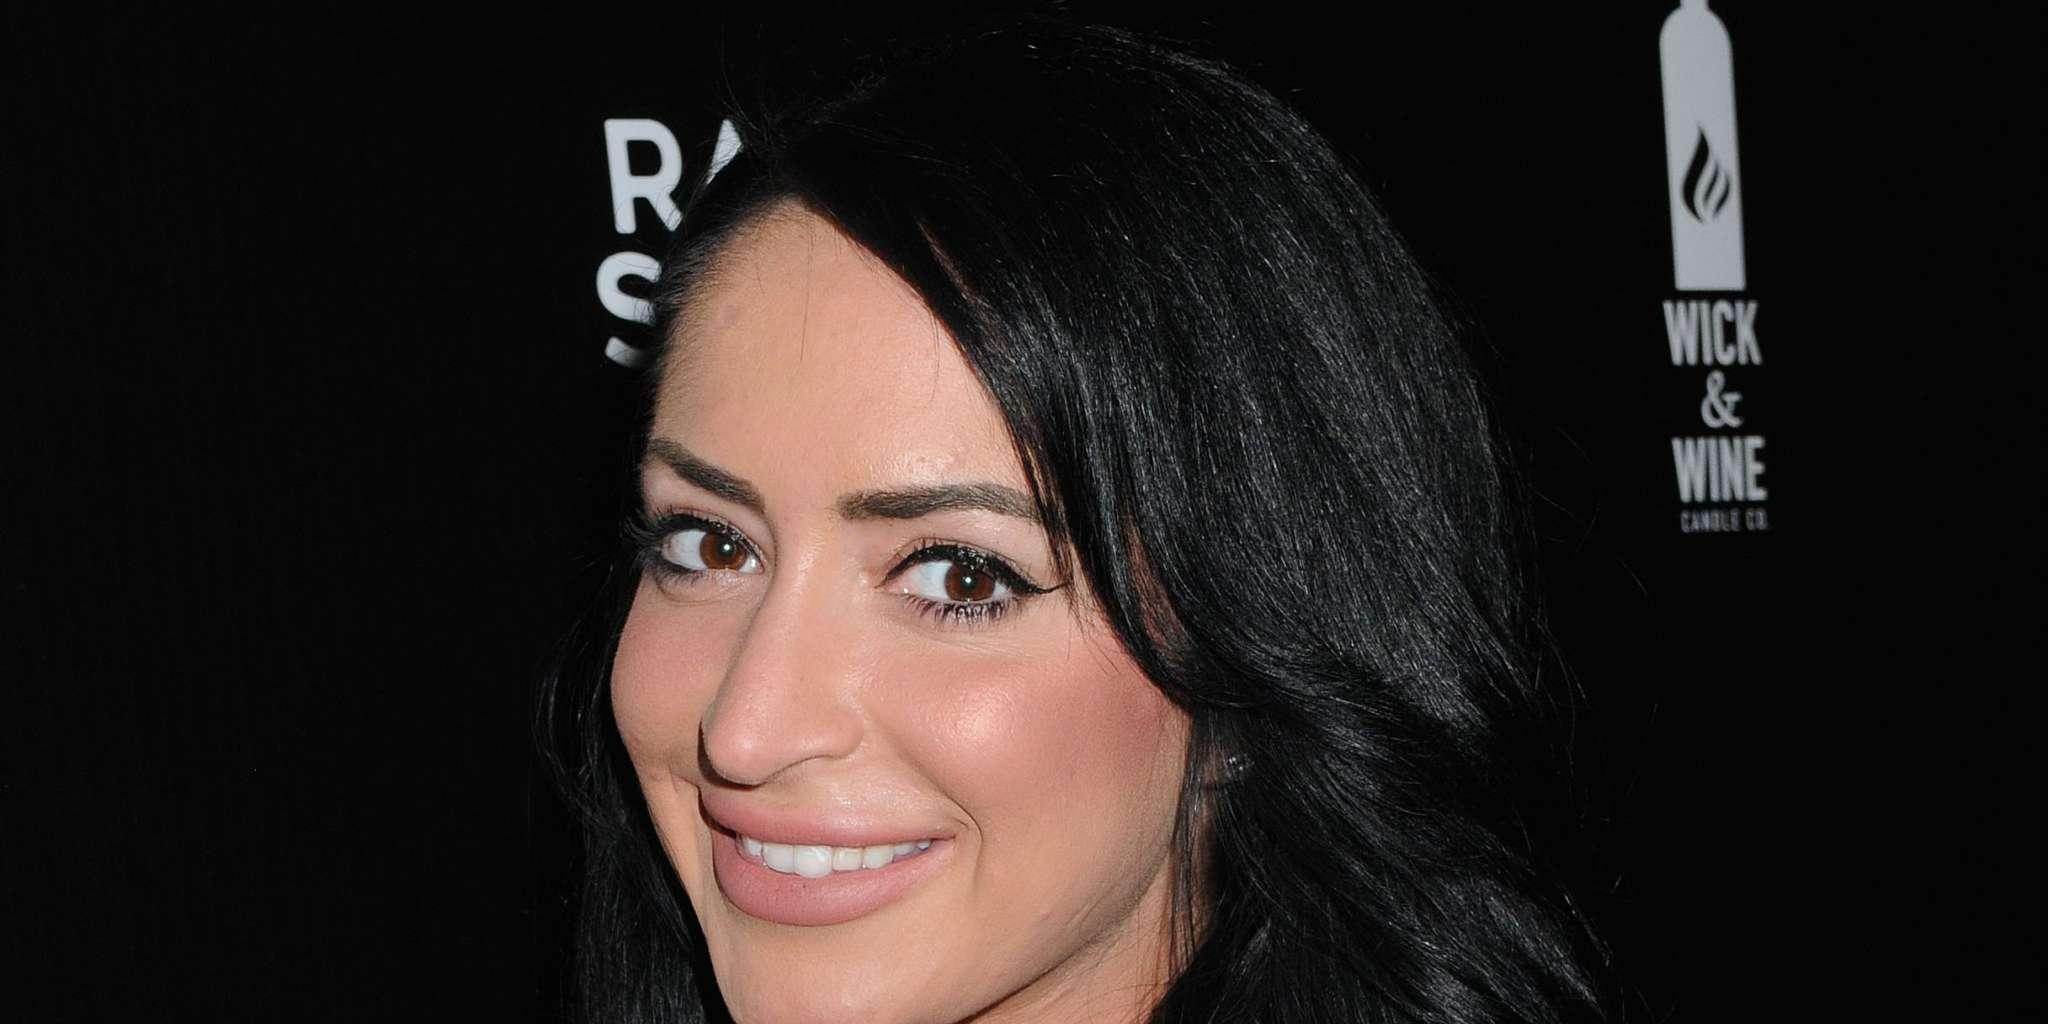 Angelina Pivarnick Took Only A Few Pictures At Her Wedding - Here's Why She Blames Her Jersey Shore Co-Stars For It!